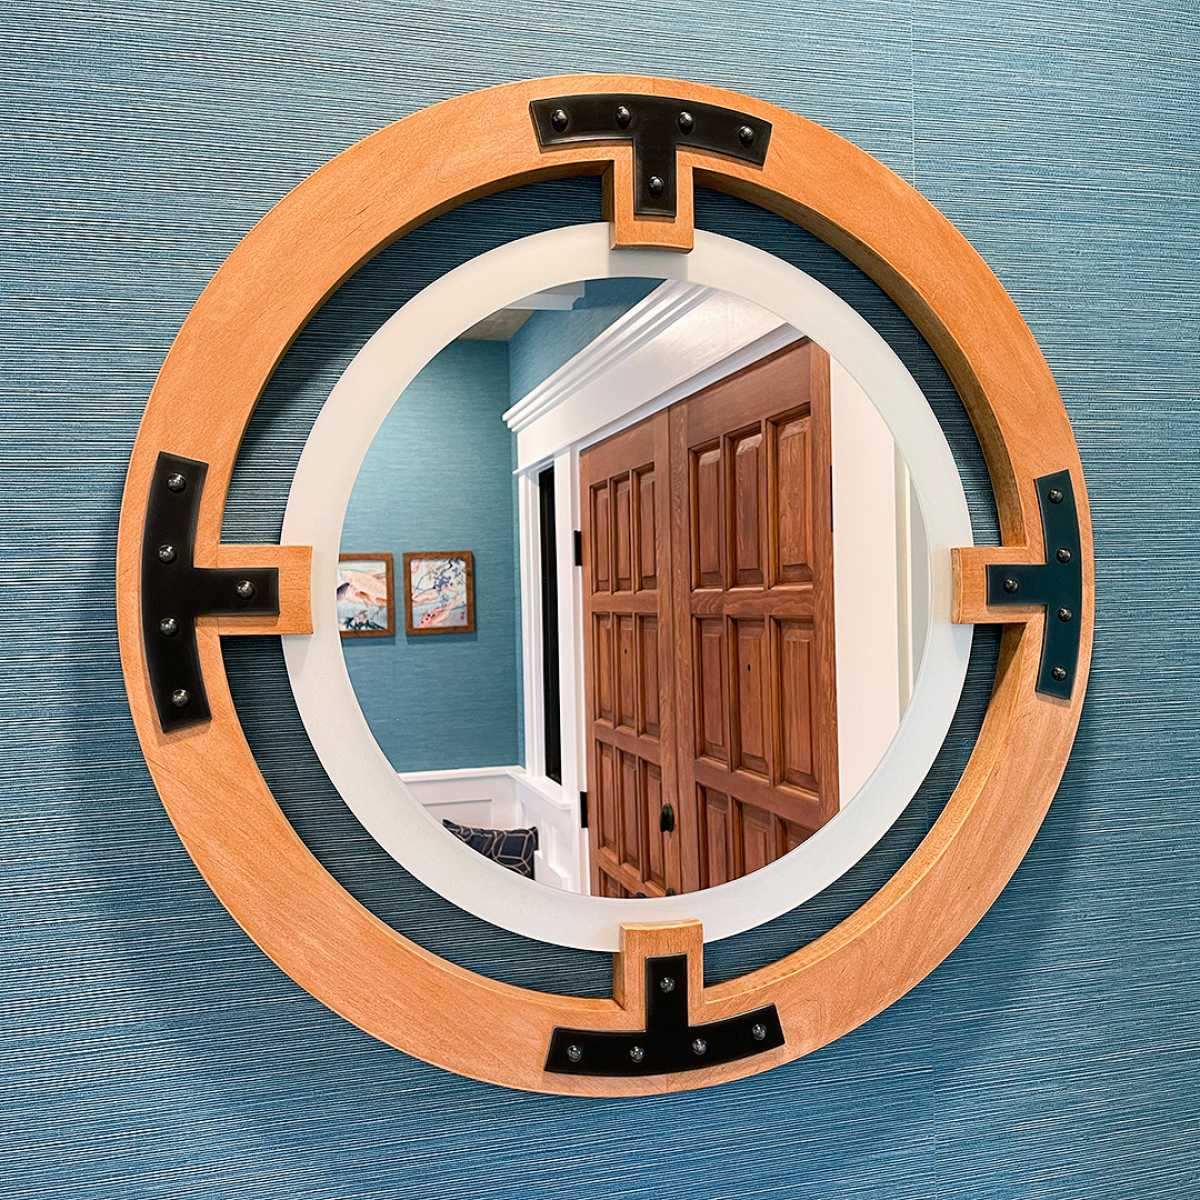 Oculus Wall Mirror by Yarbough Design